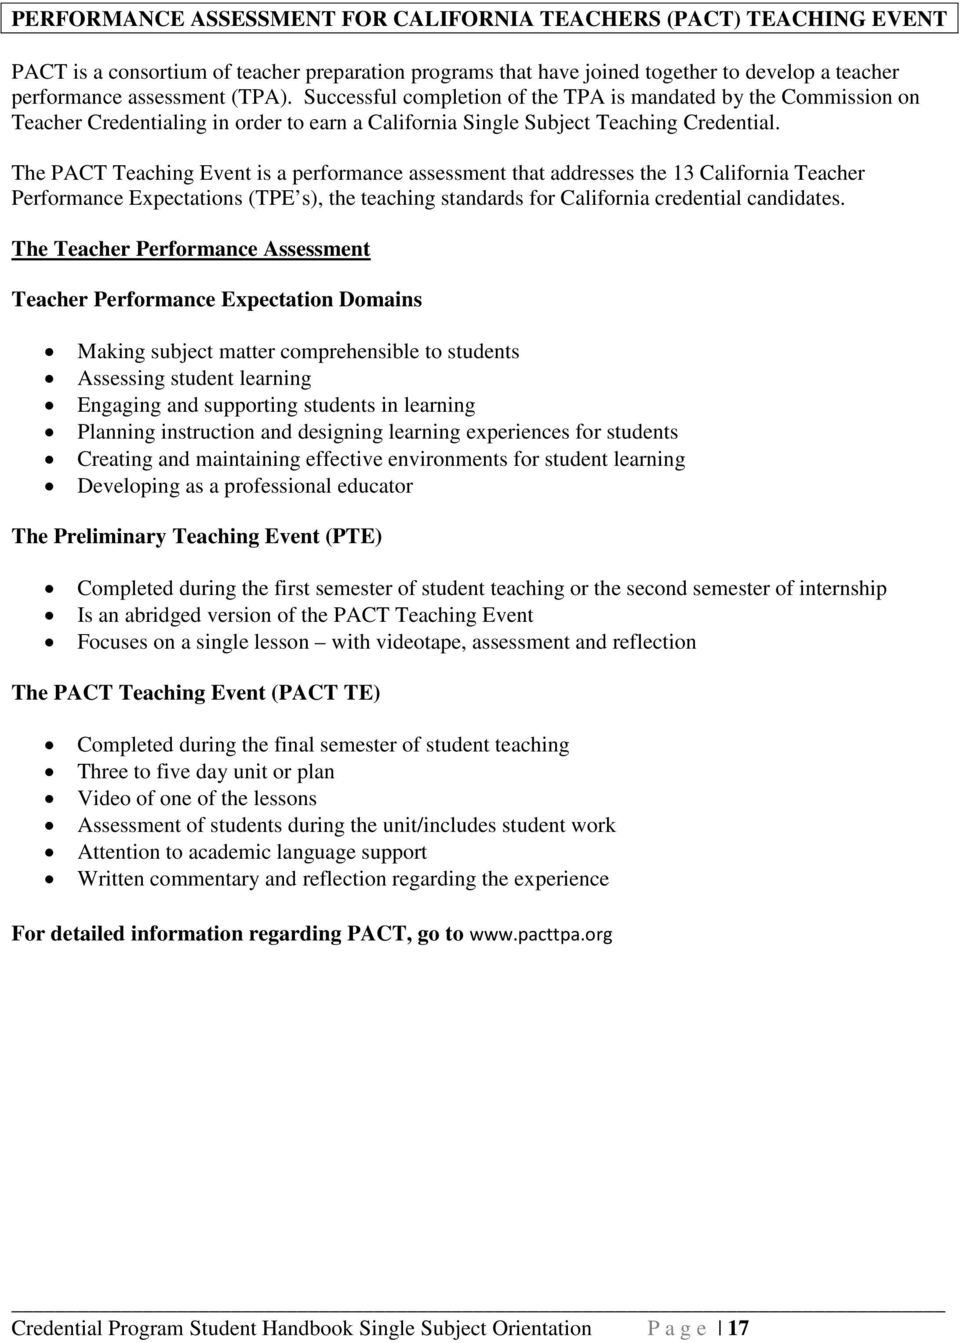 The PACT Teaching Event is a performance assessment that addresses the 13 California Teacher Performance Expectations (TPE s), the teaching standards for California credential candidates.